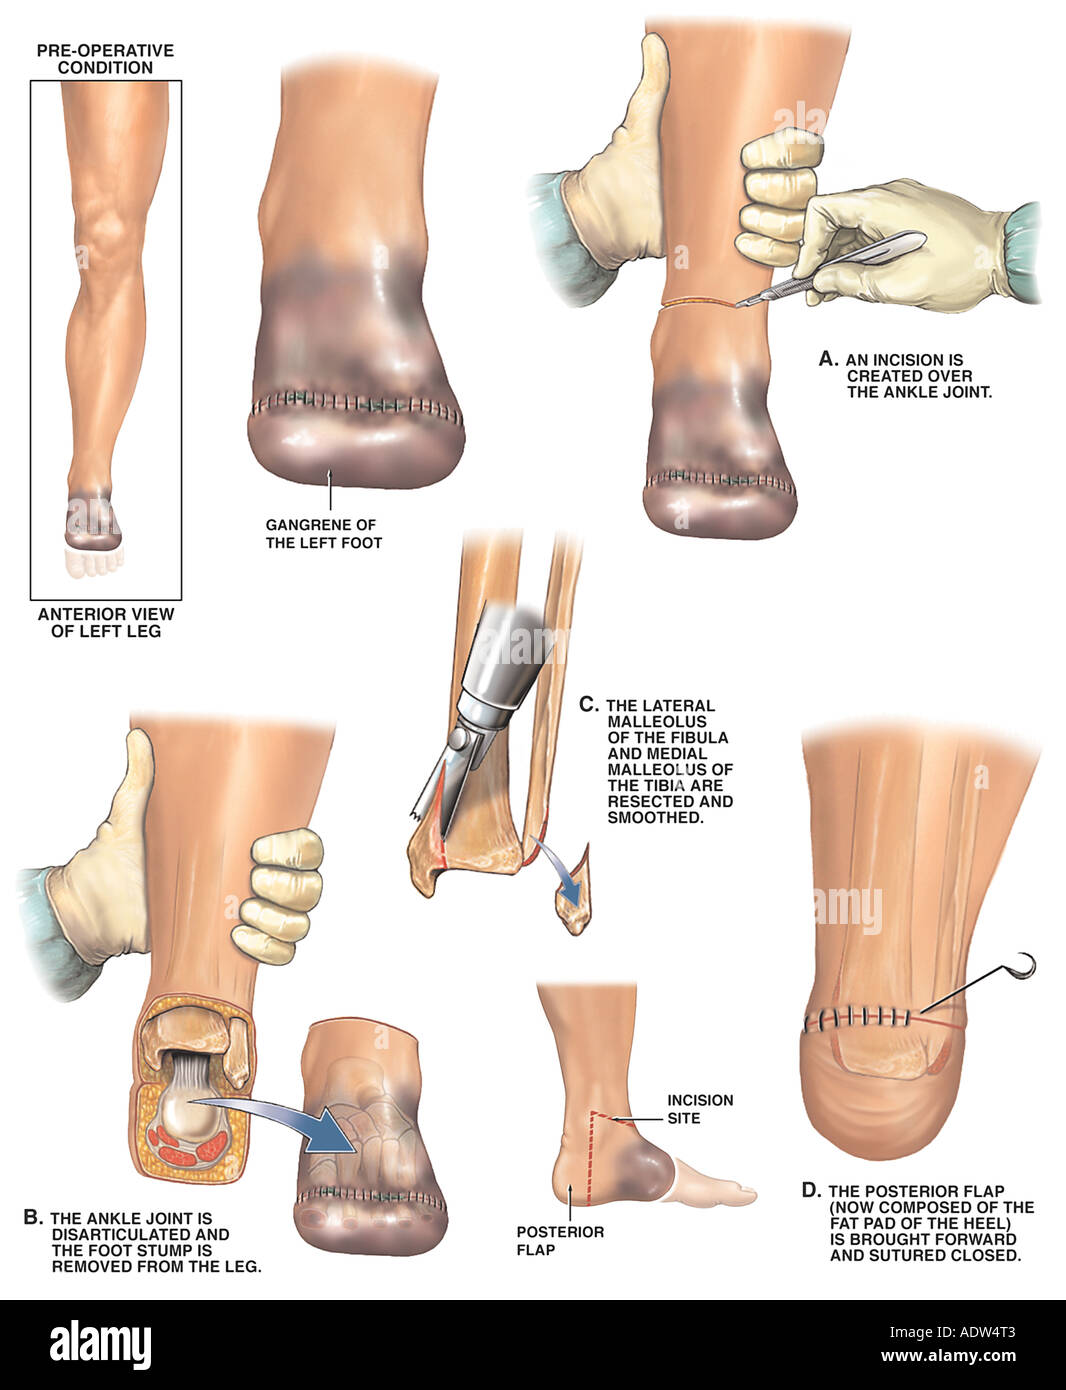 Post operative Gangrene of the Left Foot with Amputation Surgery - Stock Image